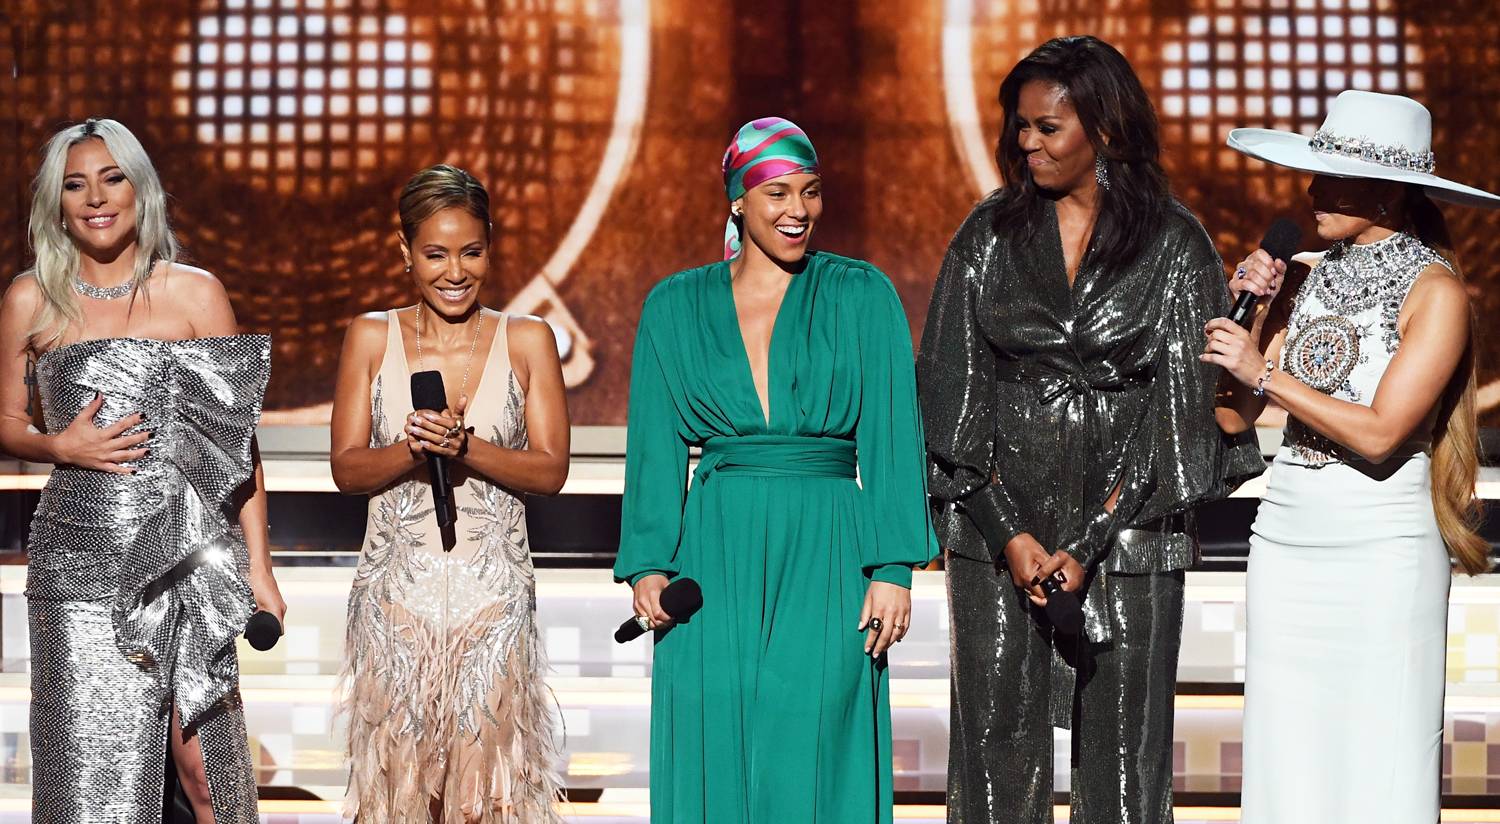 Grammy 2019: Michelle Obama, Alicia Keys, & More Share Powerful Grammys